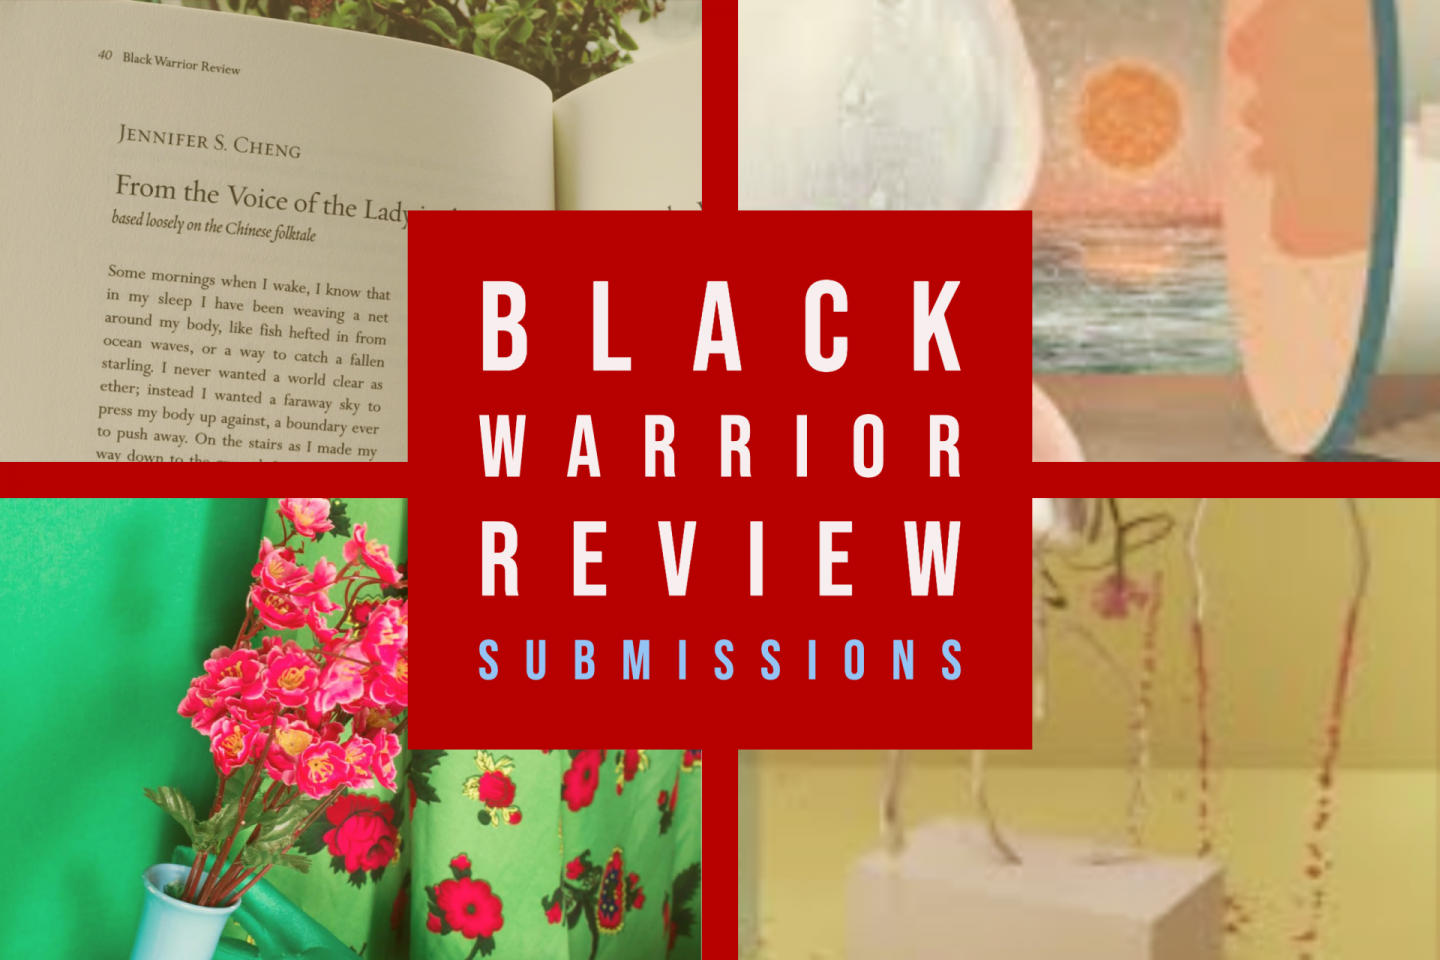 Black Warrior Review is Accepting Submissions